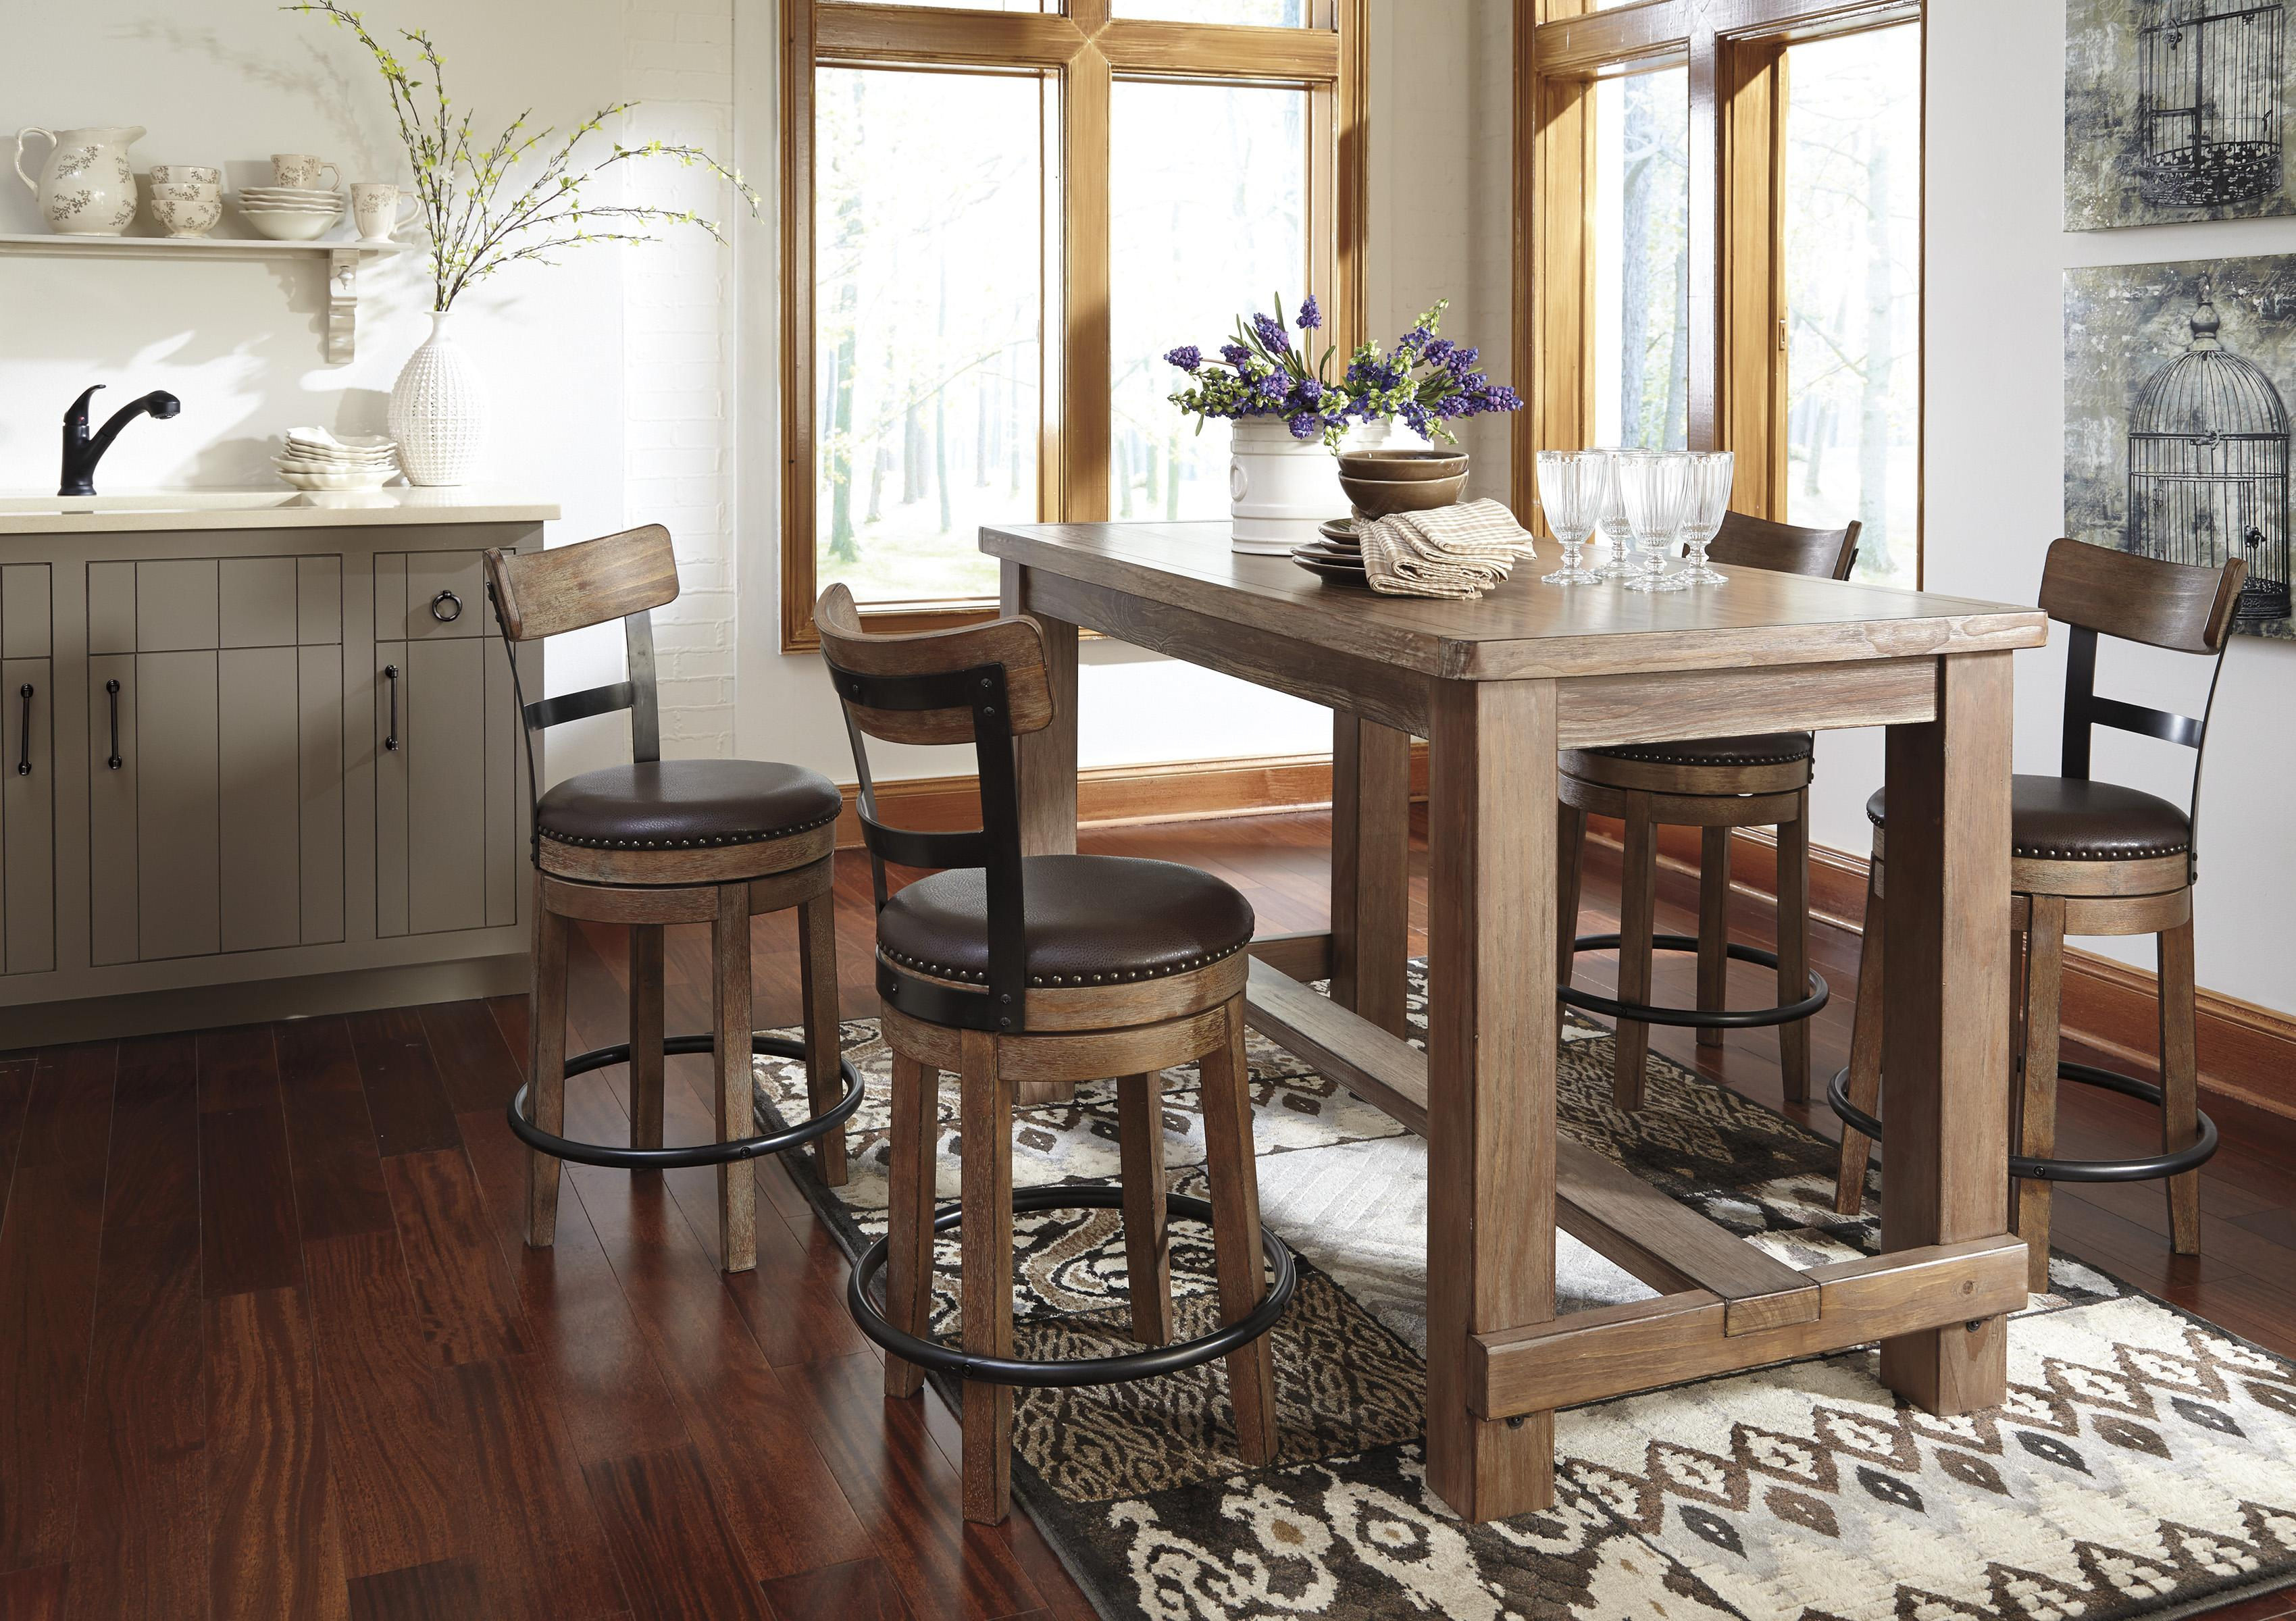 Signature Design by Ashley Pinnadel Rectangular Pine Veneer Dining Room Counter Table in Wire Brushed Brown Gray Finish | Sparks HomeStore \u0026 Home ... & Signature Design by Ashley Pinnadel Rectangular Pine Veneer Dining ...